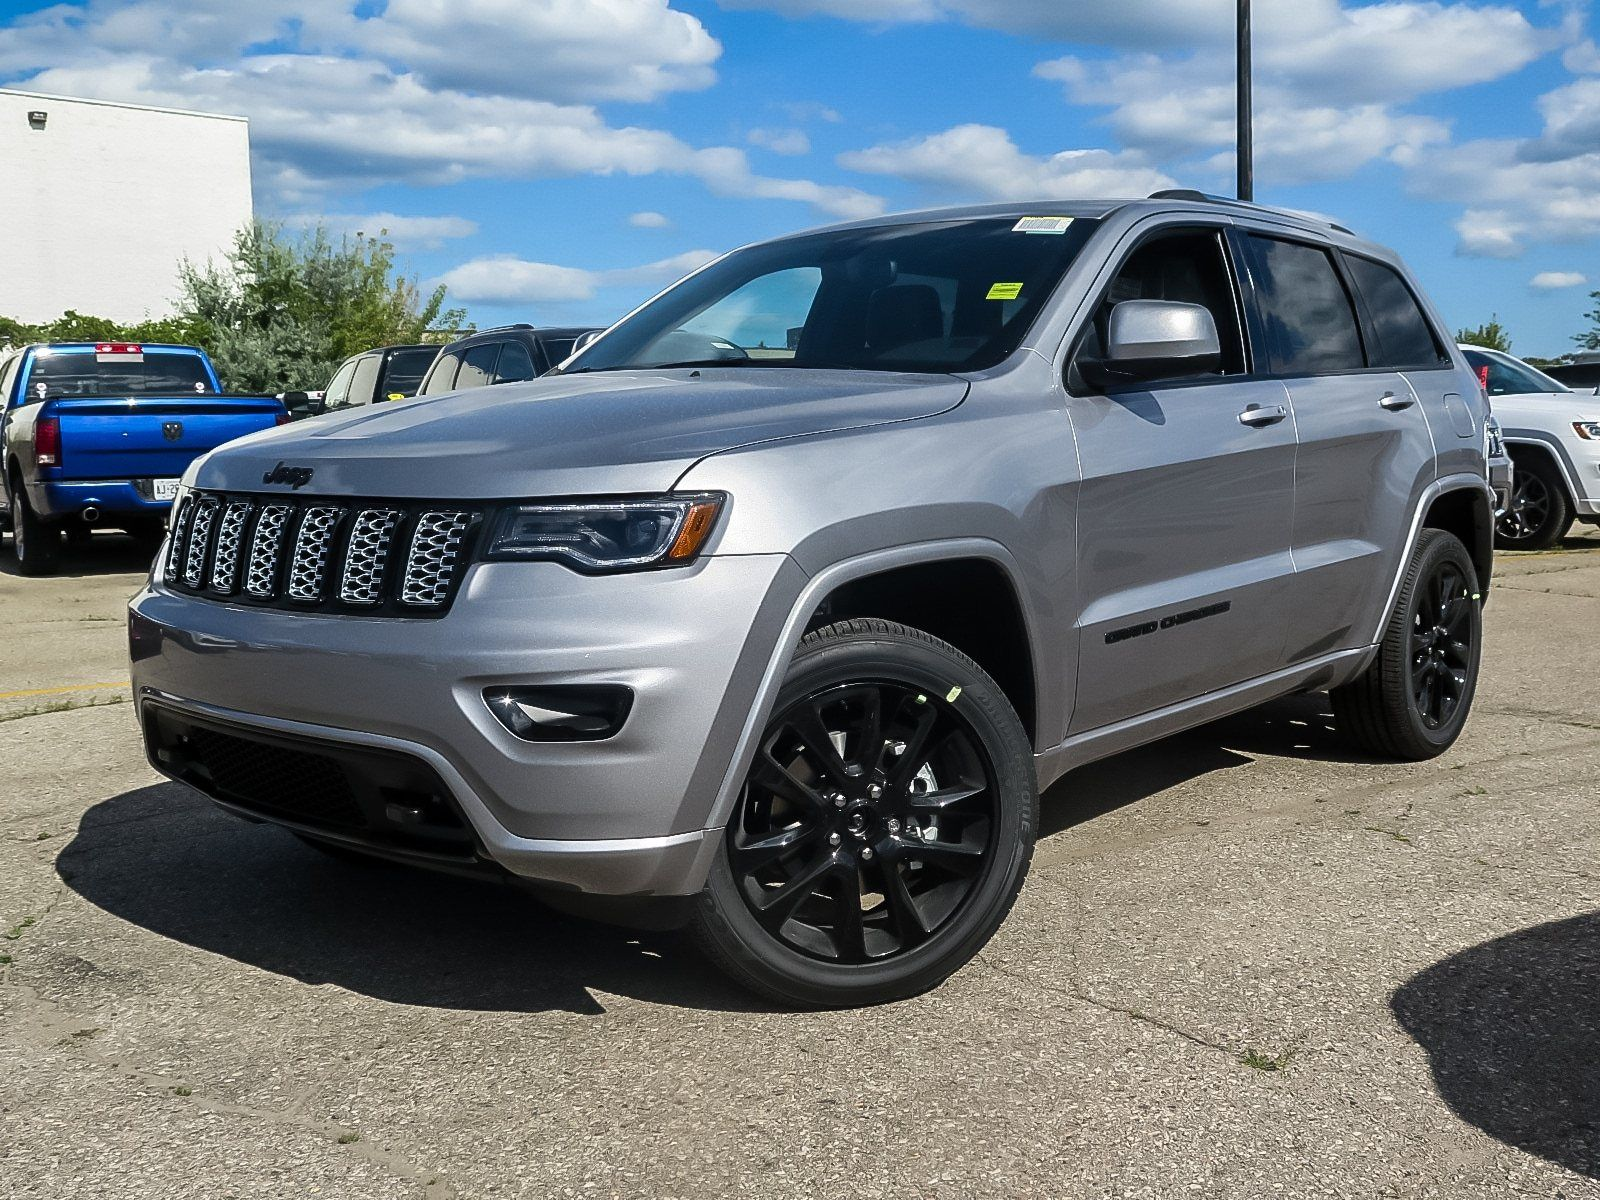 2020 Jeep Grand Cherokee Diesel Configurations In 2020 Jeep